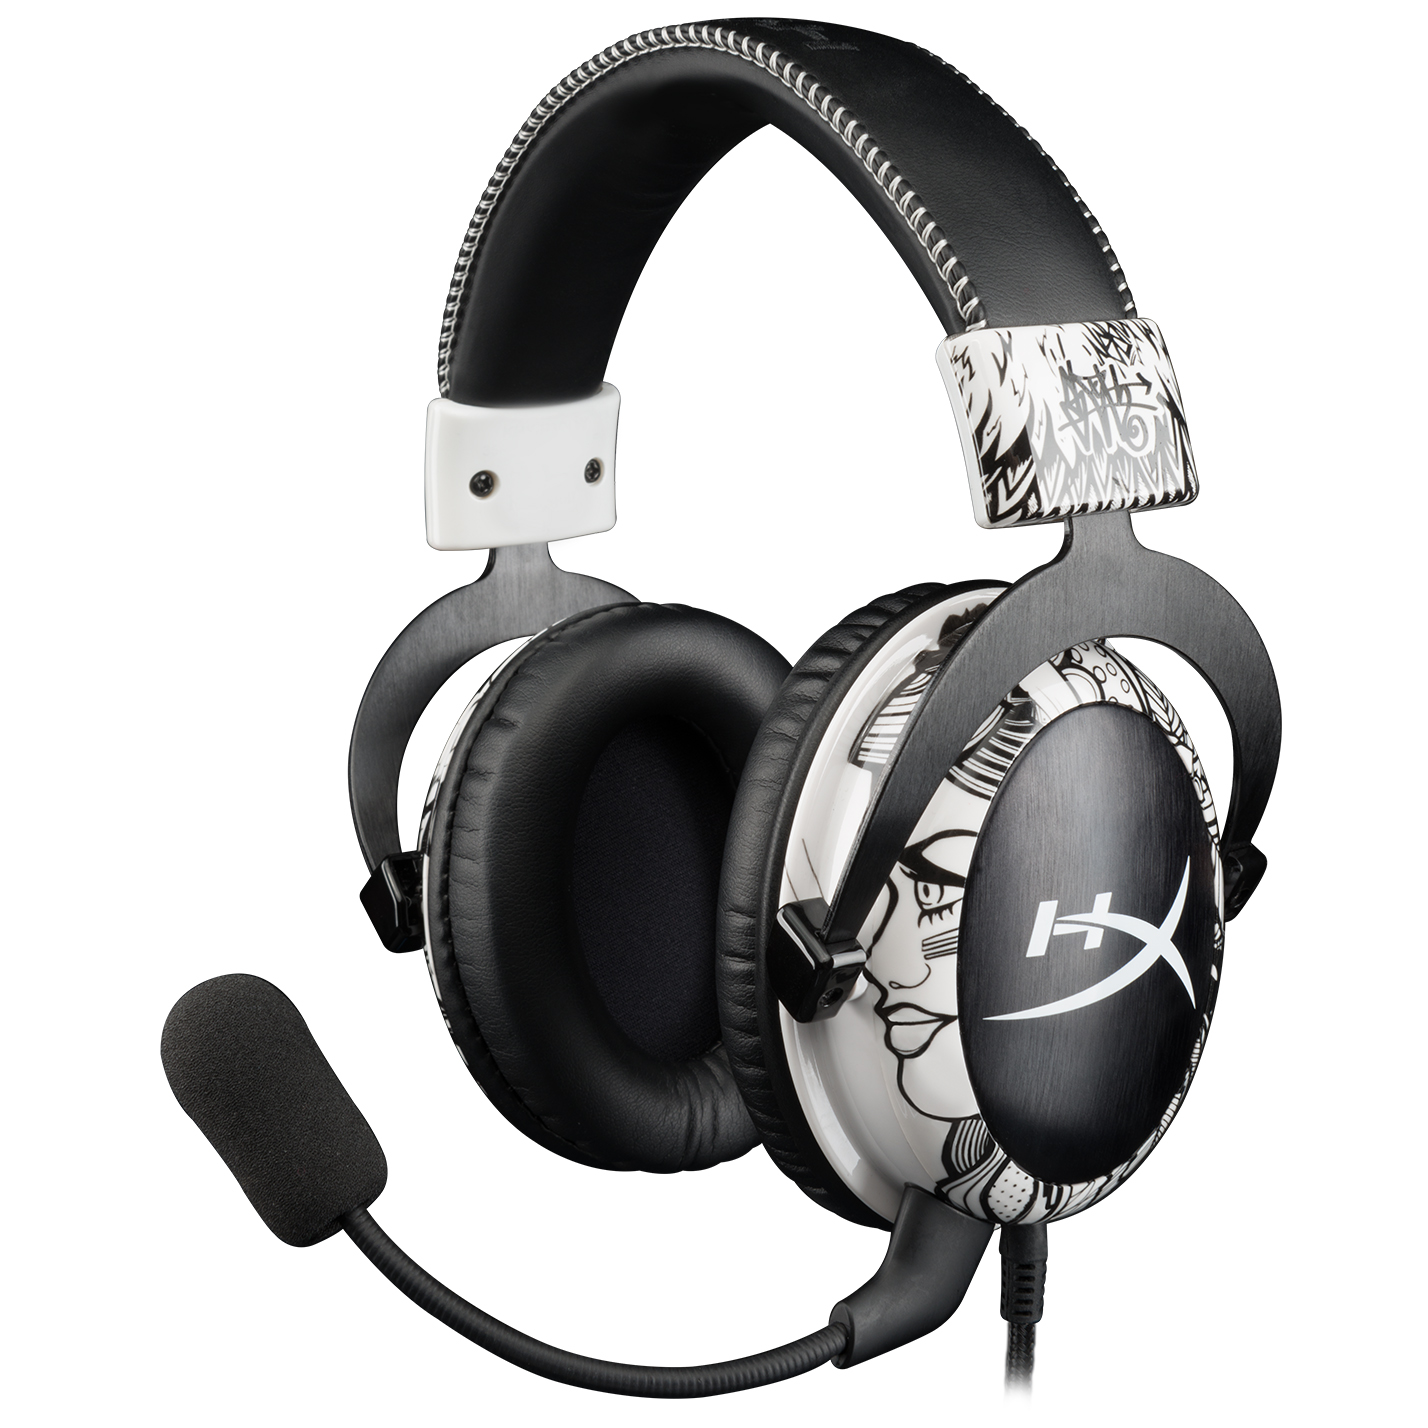 HyperX Cloud Mav Edition_HX_Cloud_Mav_1428x1428_25_09_2015 13_14